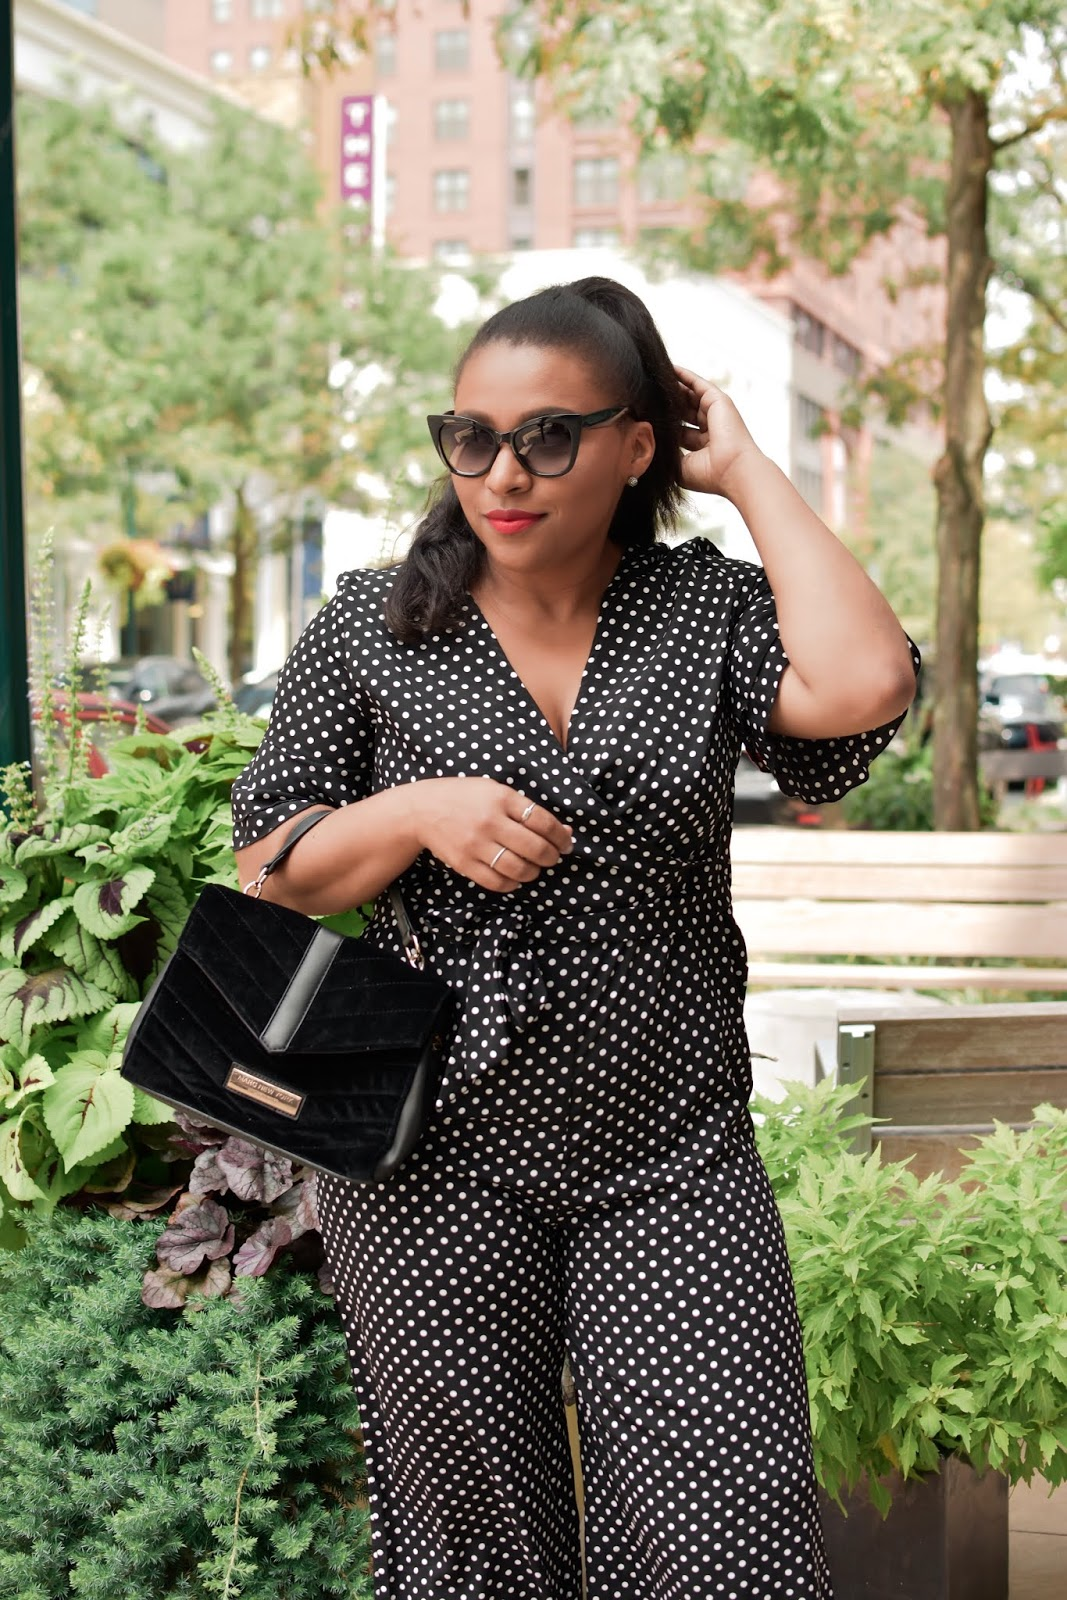 Shein, shein clothes, polka dot trend, polka dot jumpsuit, stylish mom outfits, black and white outfits